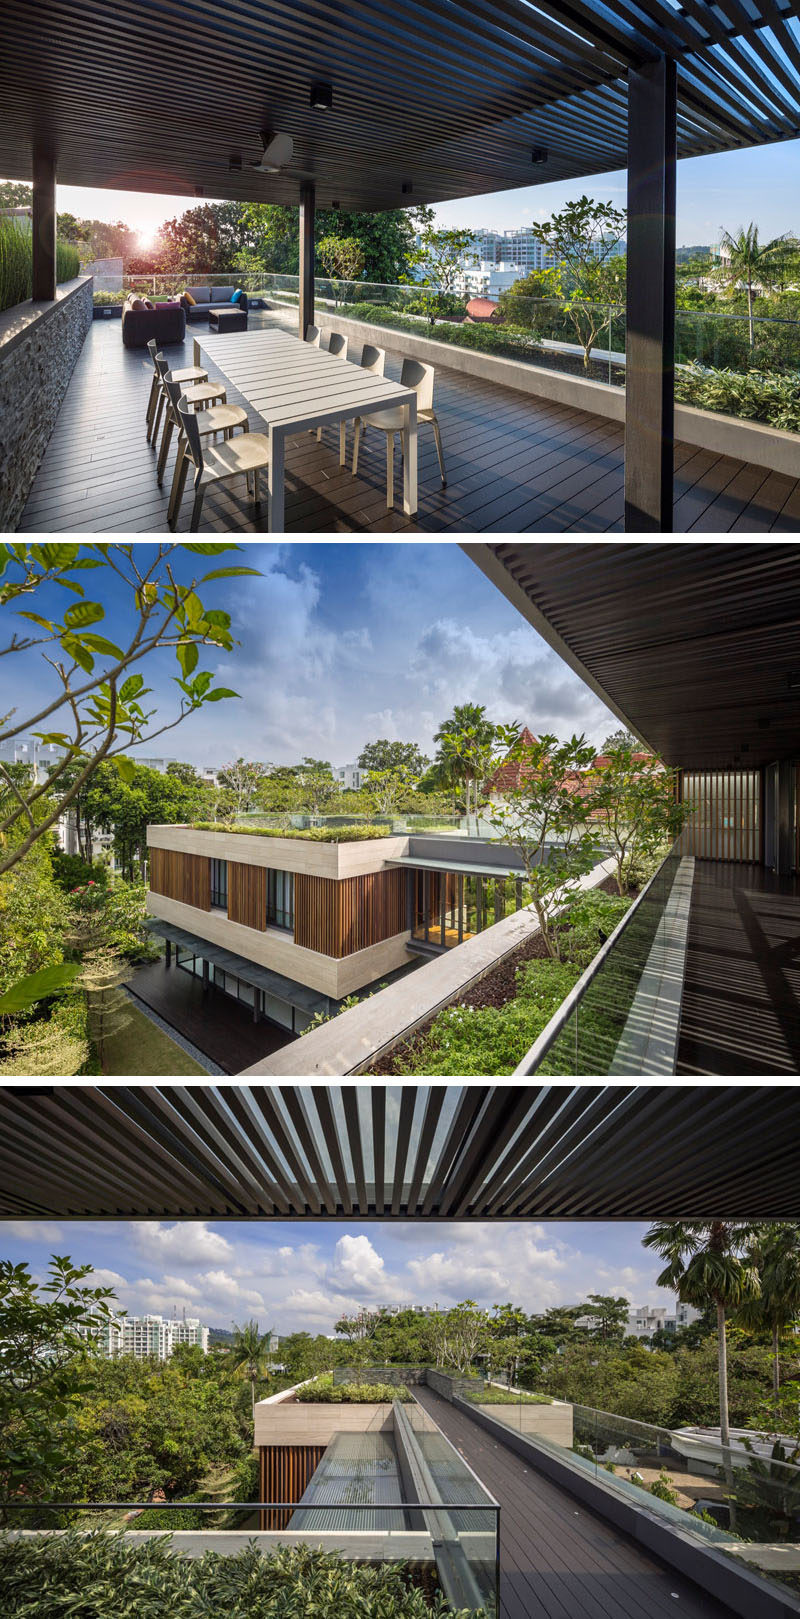 This home has a roof top deck split into two areas, that both have views of the surrounding area.